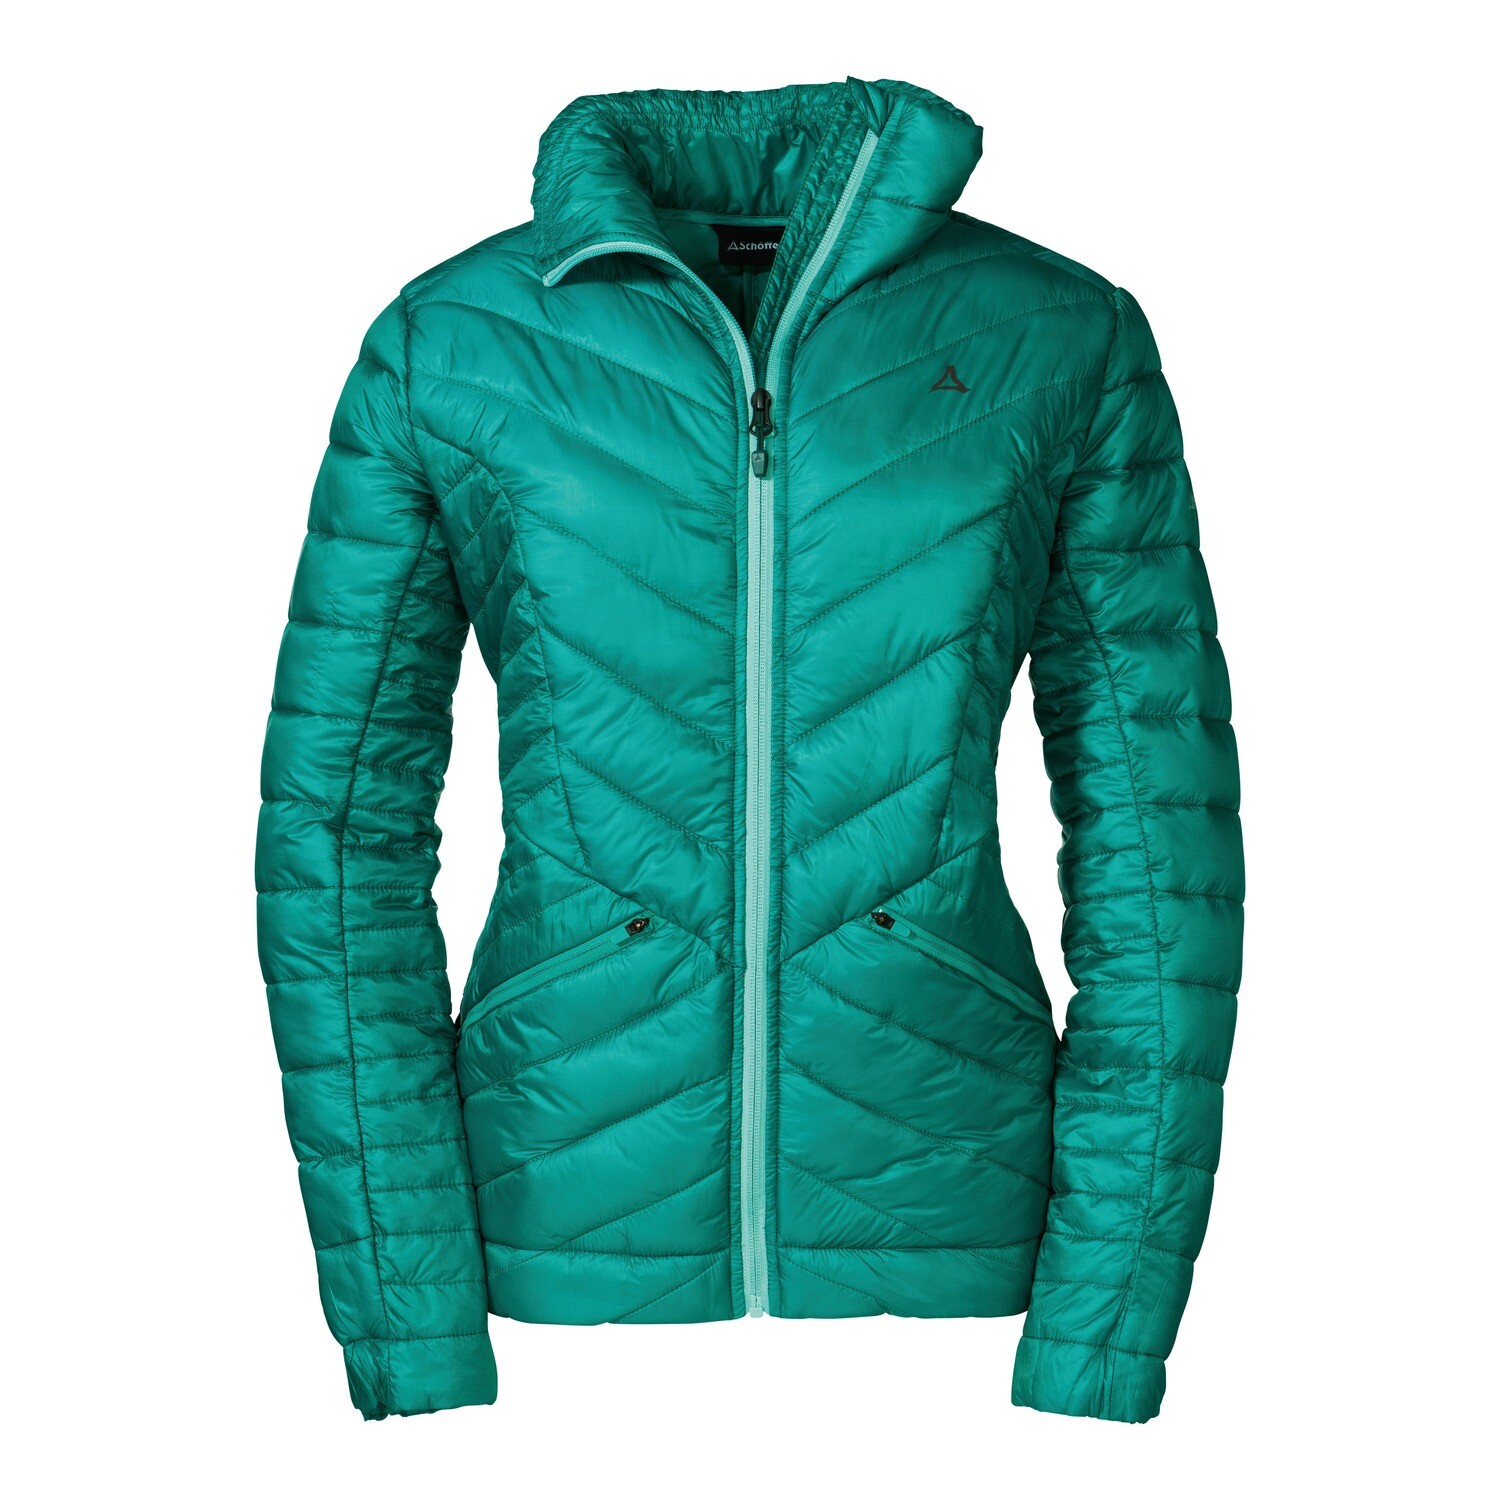 SCHÖFFEL Covol Thermo Jacket